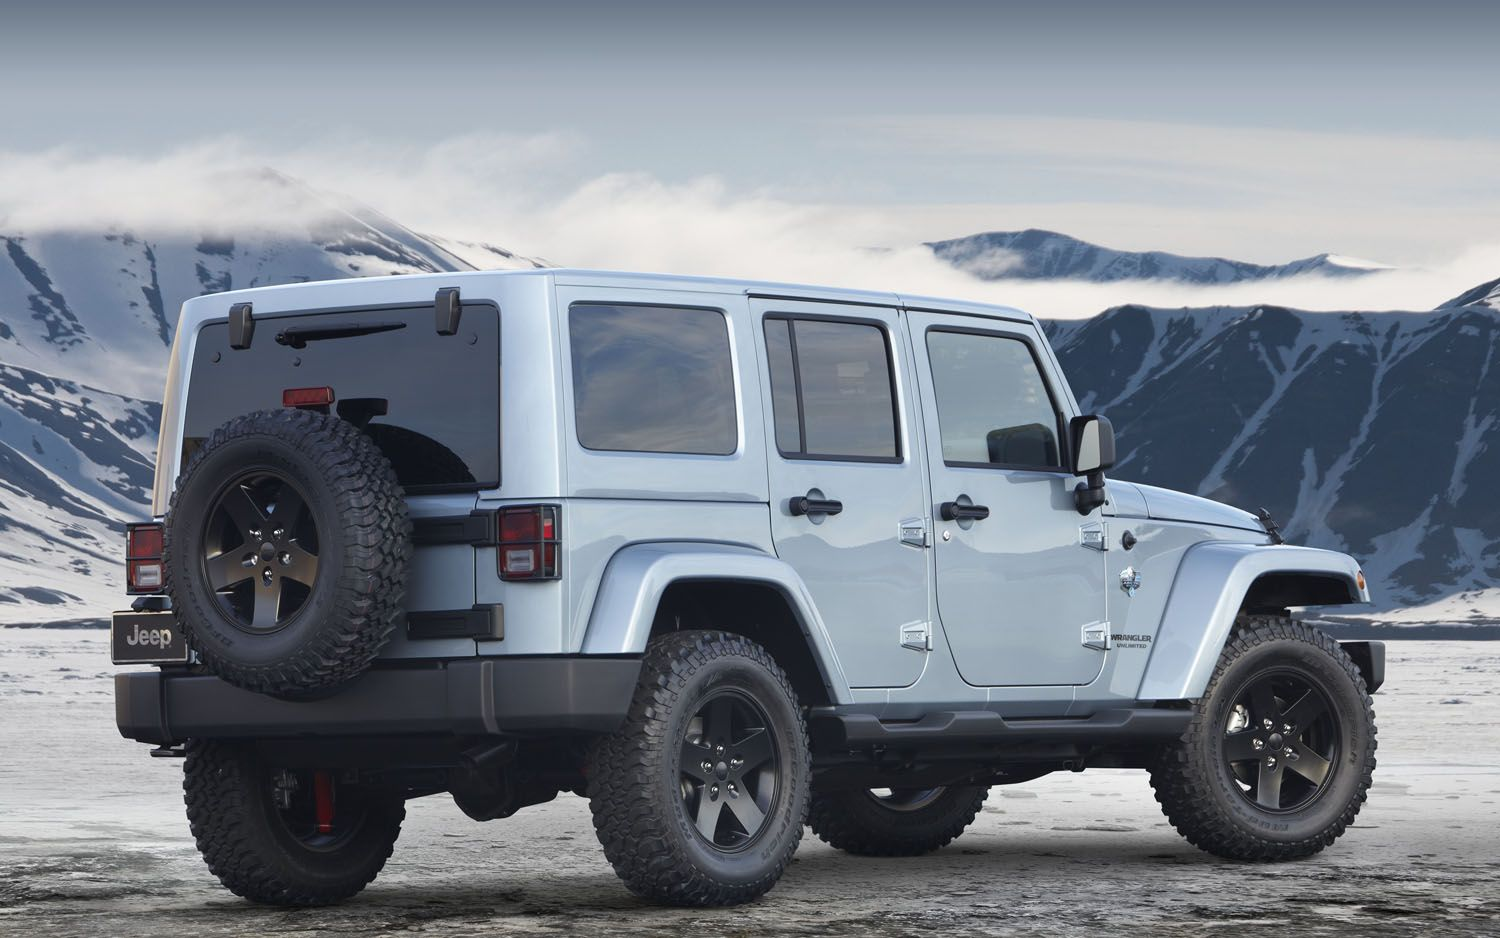 2015 Jeep Wrangler Unlimited Sahara Cons Not sure if